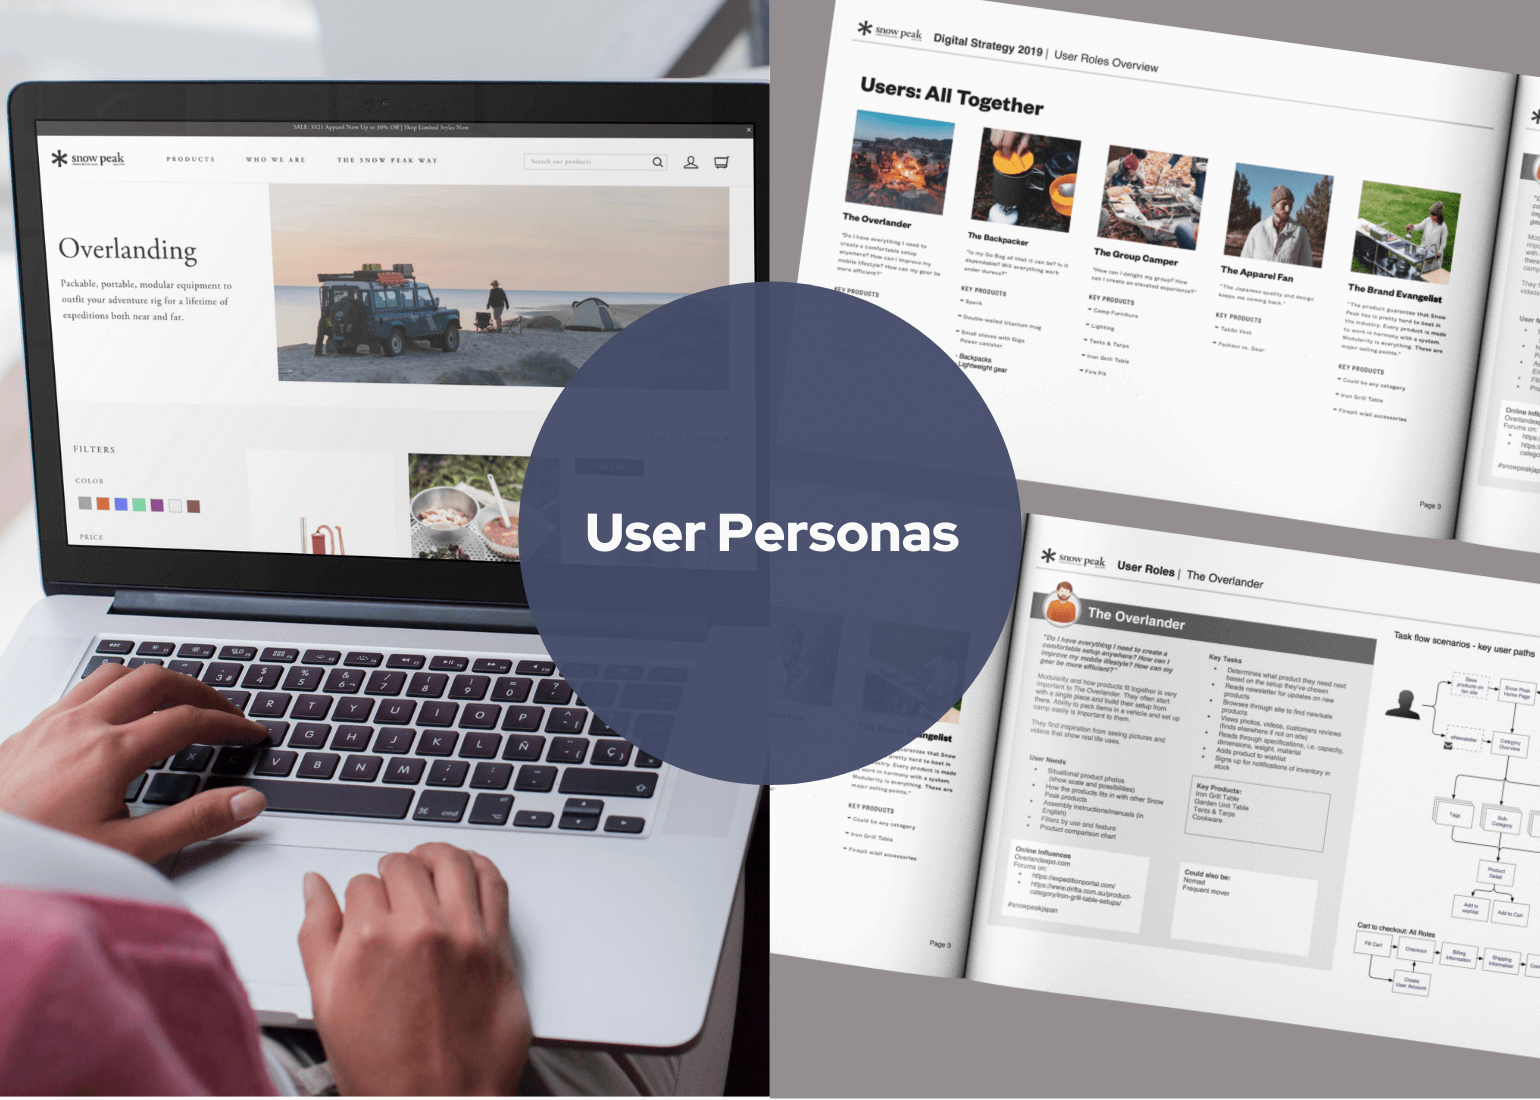 User Personas. Hands on laptop, with view of online store. User personas.